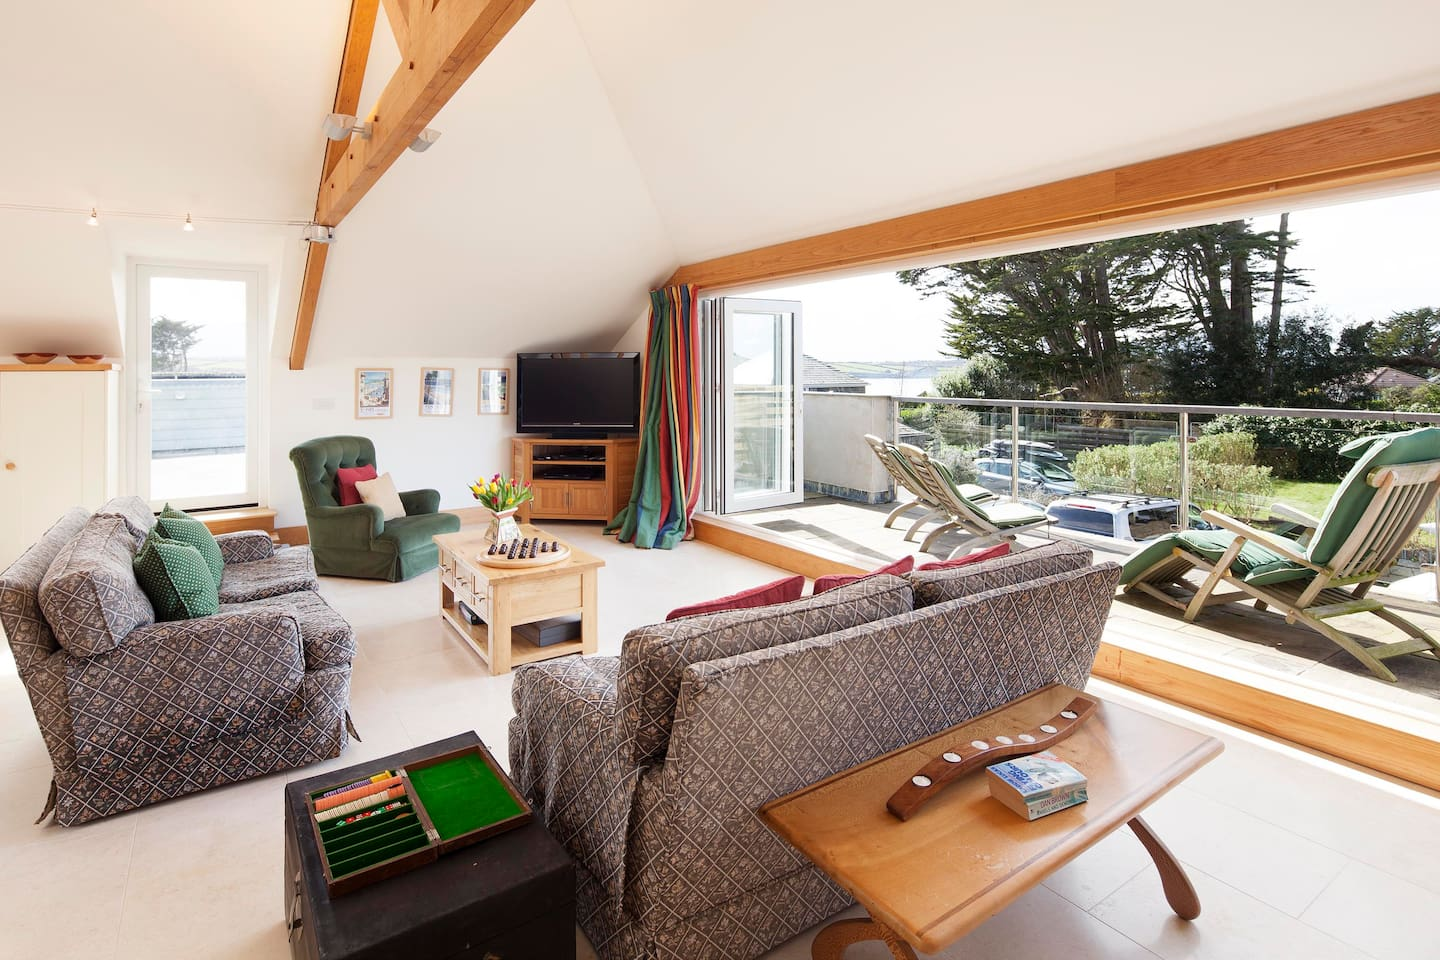 The light and airy living room with the front deck looking out to Porthilly Cove below